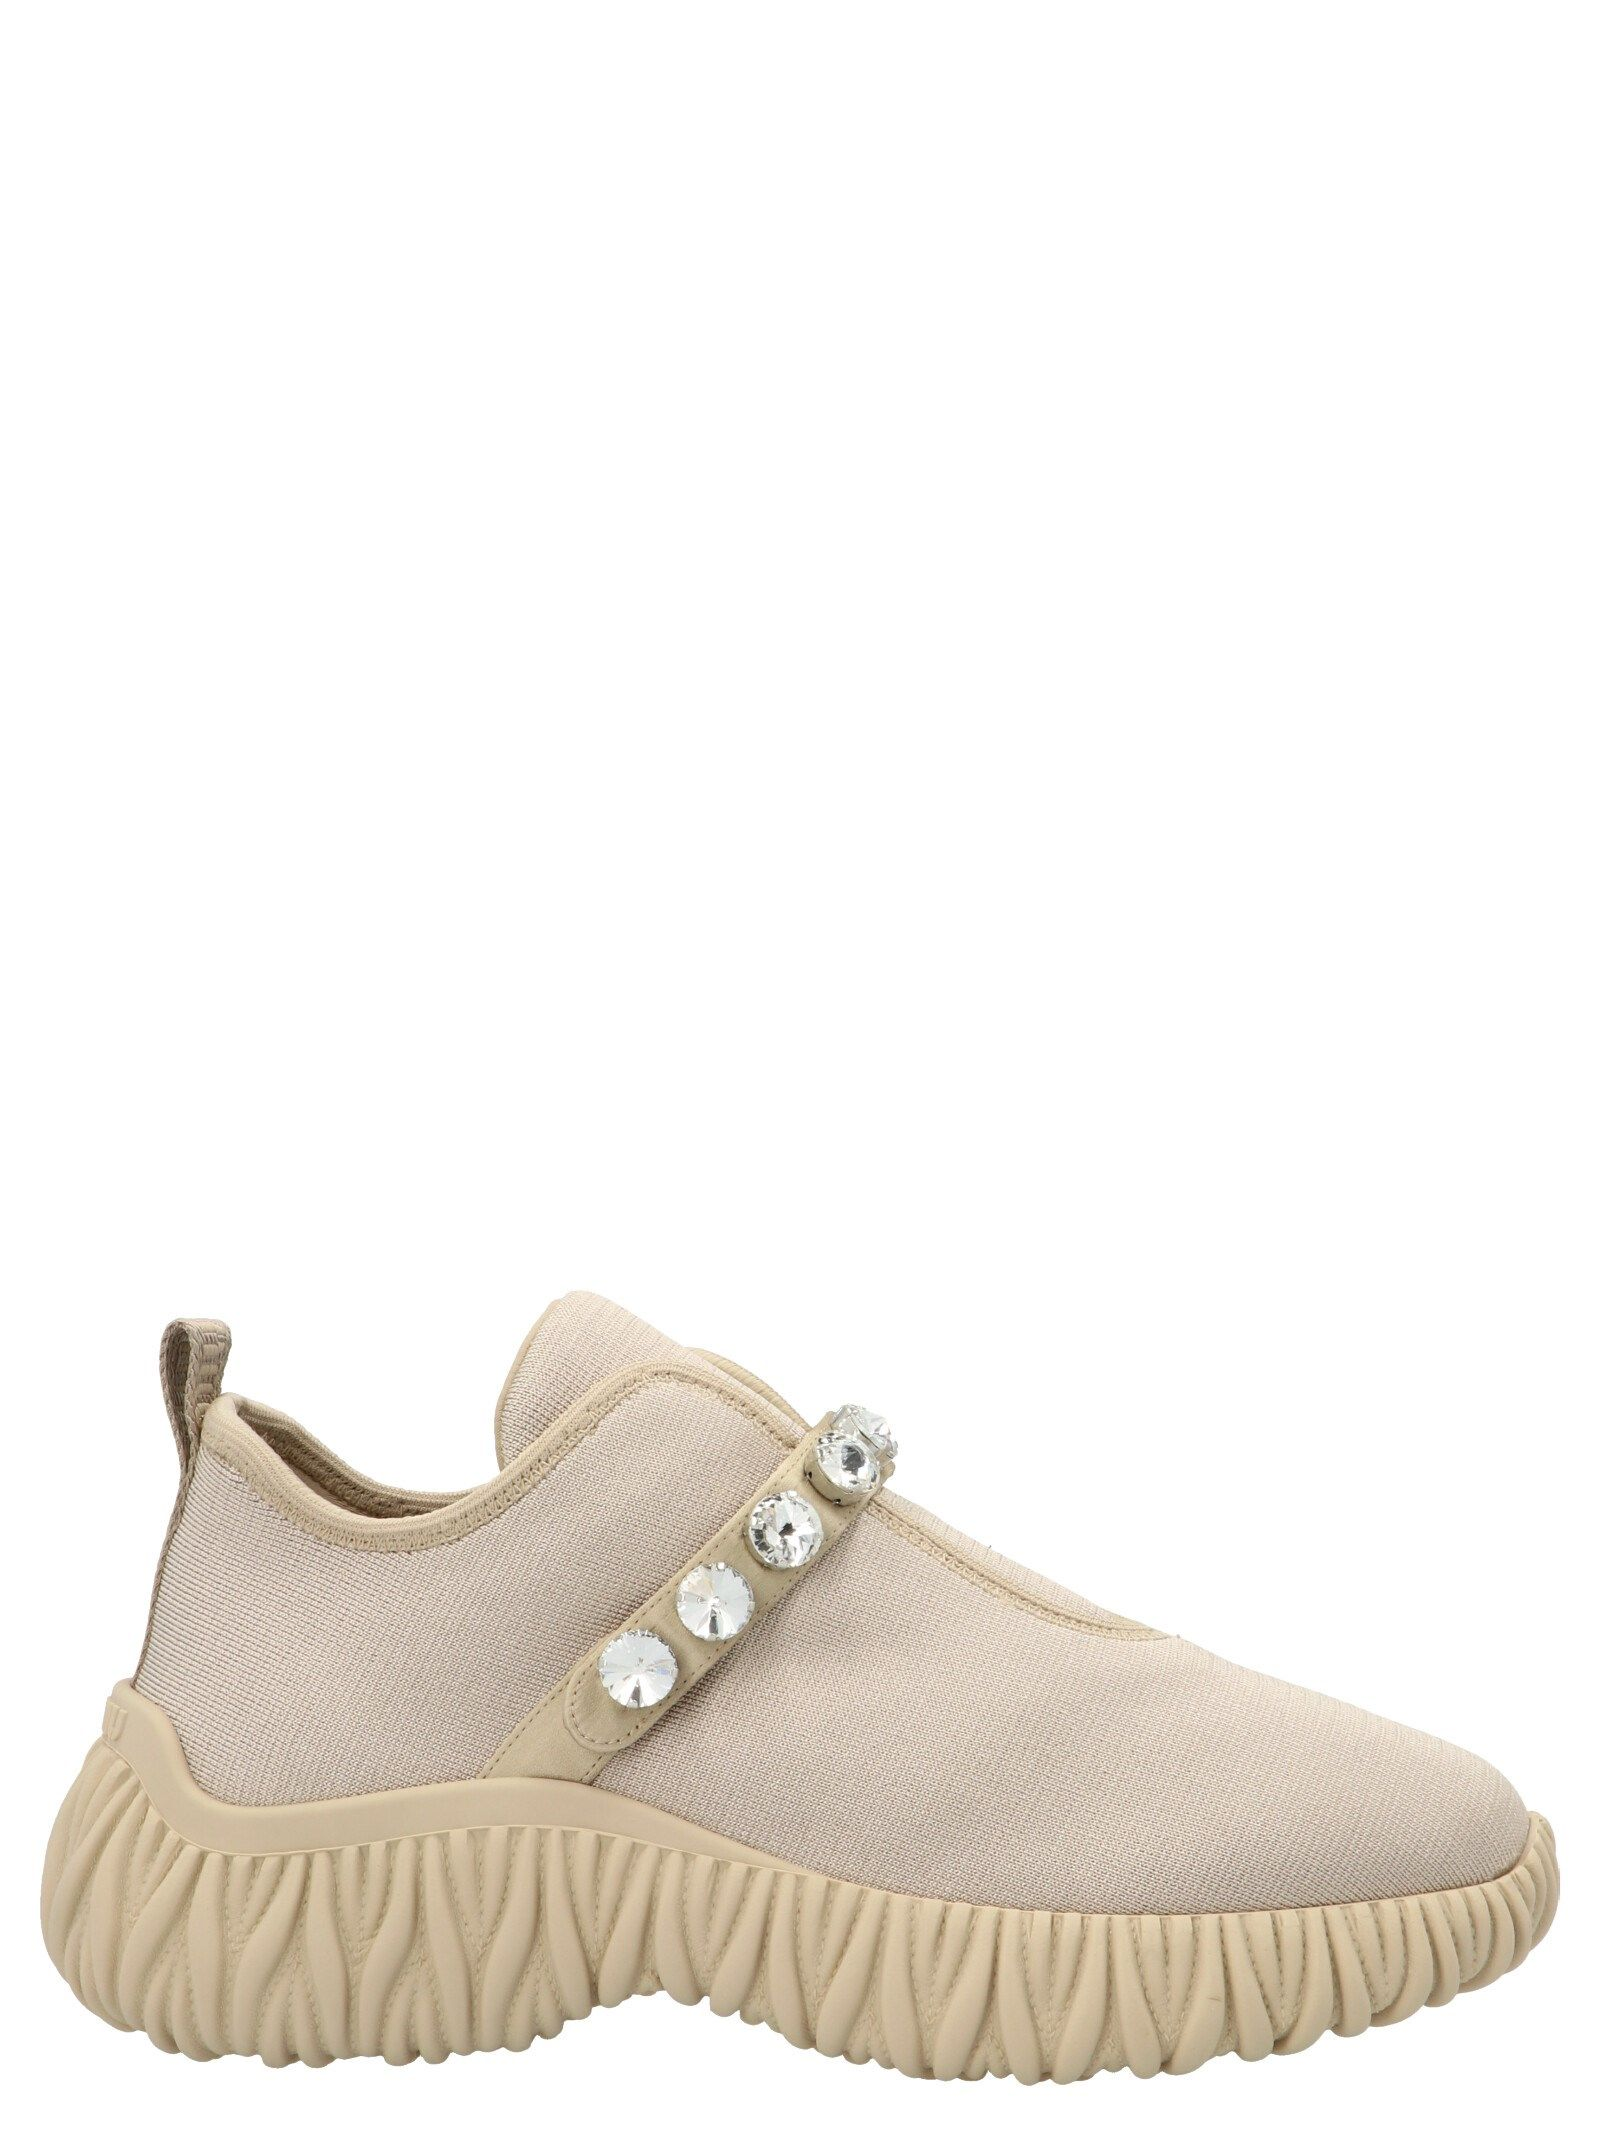 Miu Miu MIU MIU WOMEN'S 5S376D3KP3F0A48 BEIGE OTHER MATERIALS SNEAKERS